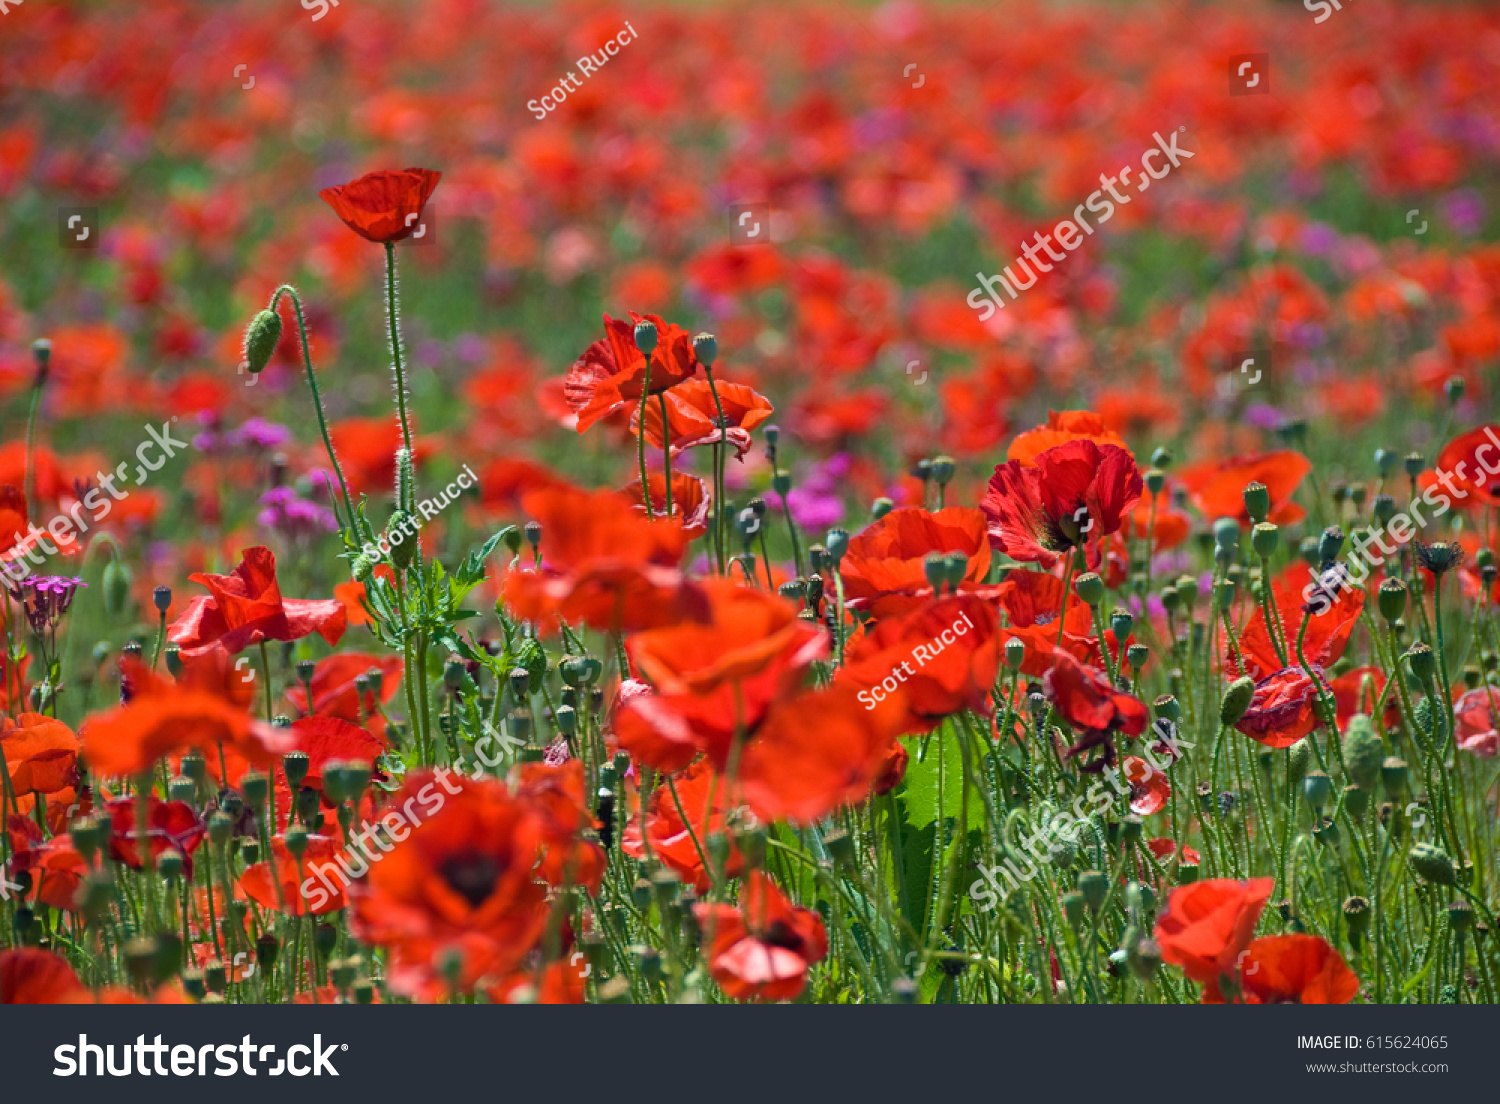 Endless Flowers A Field Of Vivid Red Poppies Extending Into The